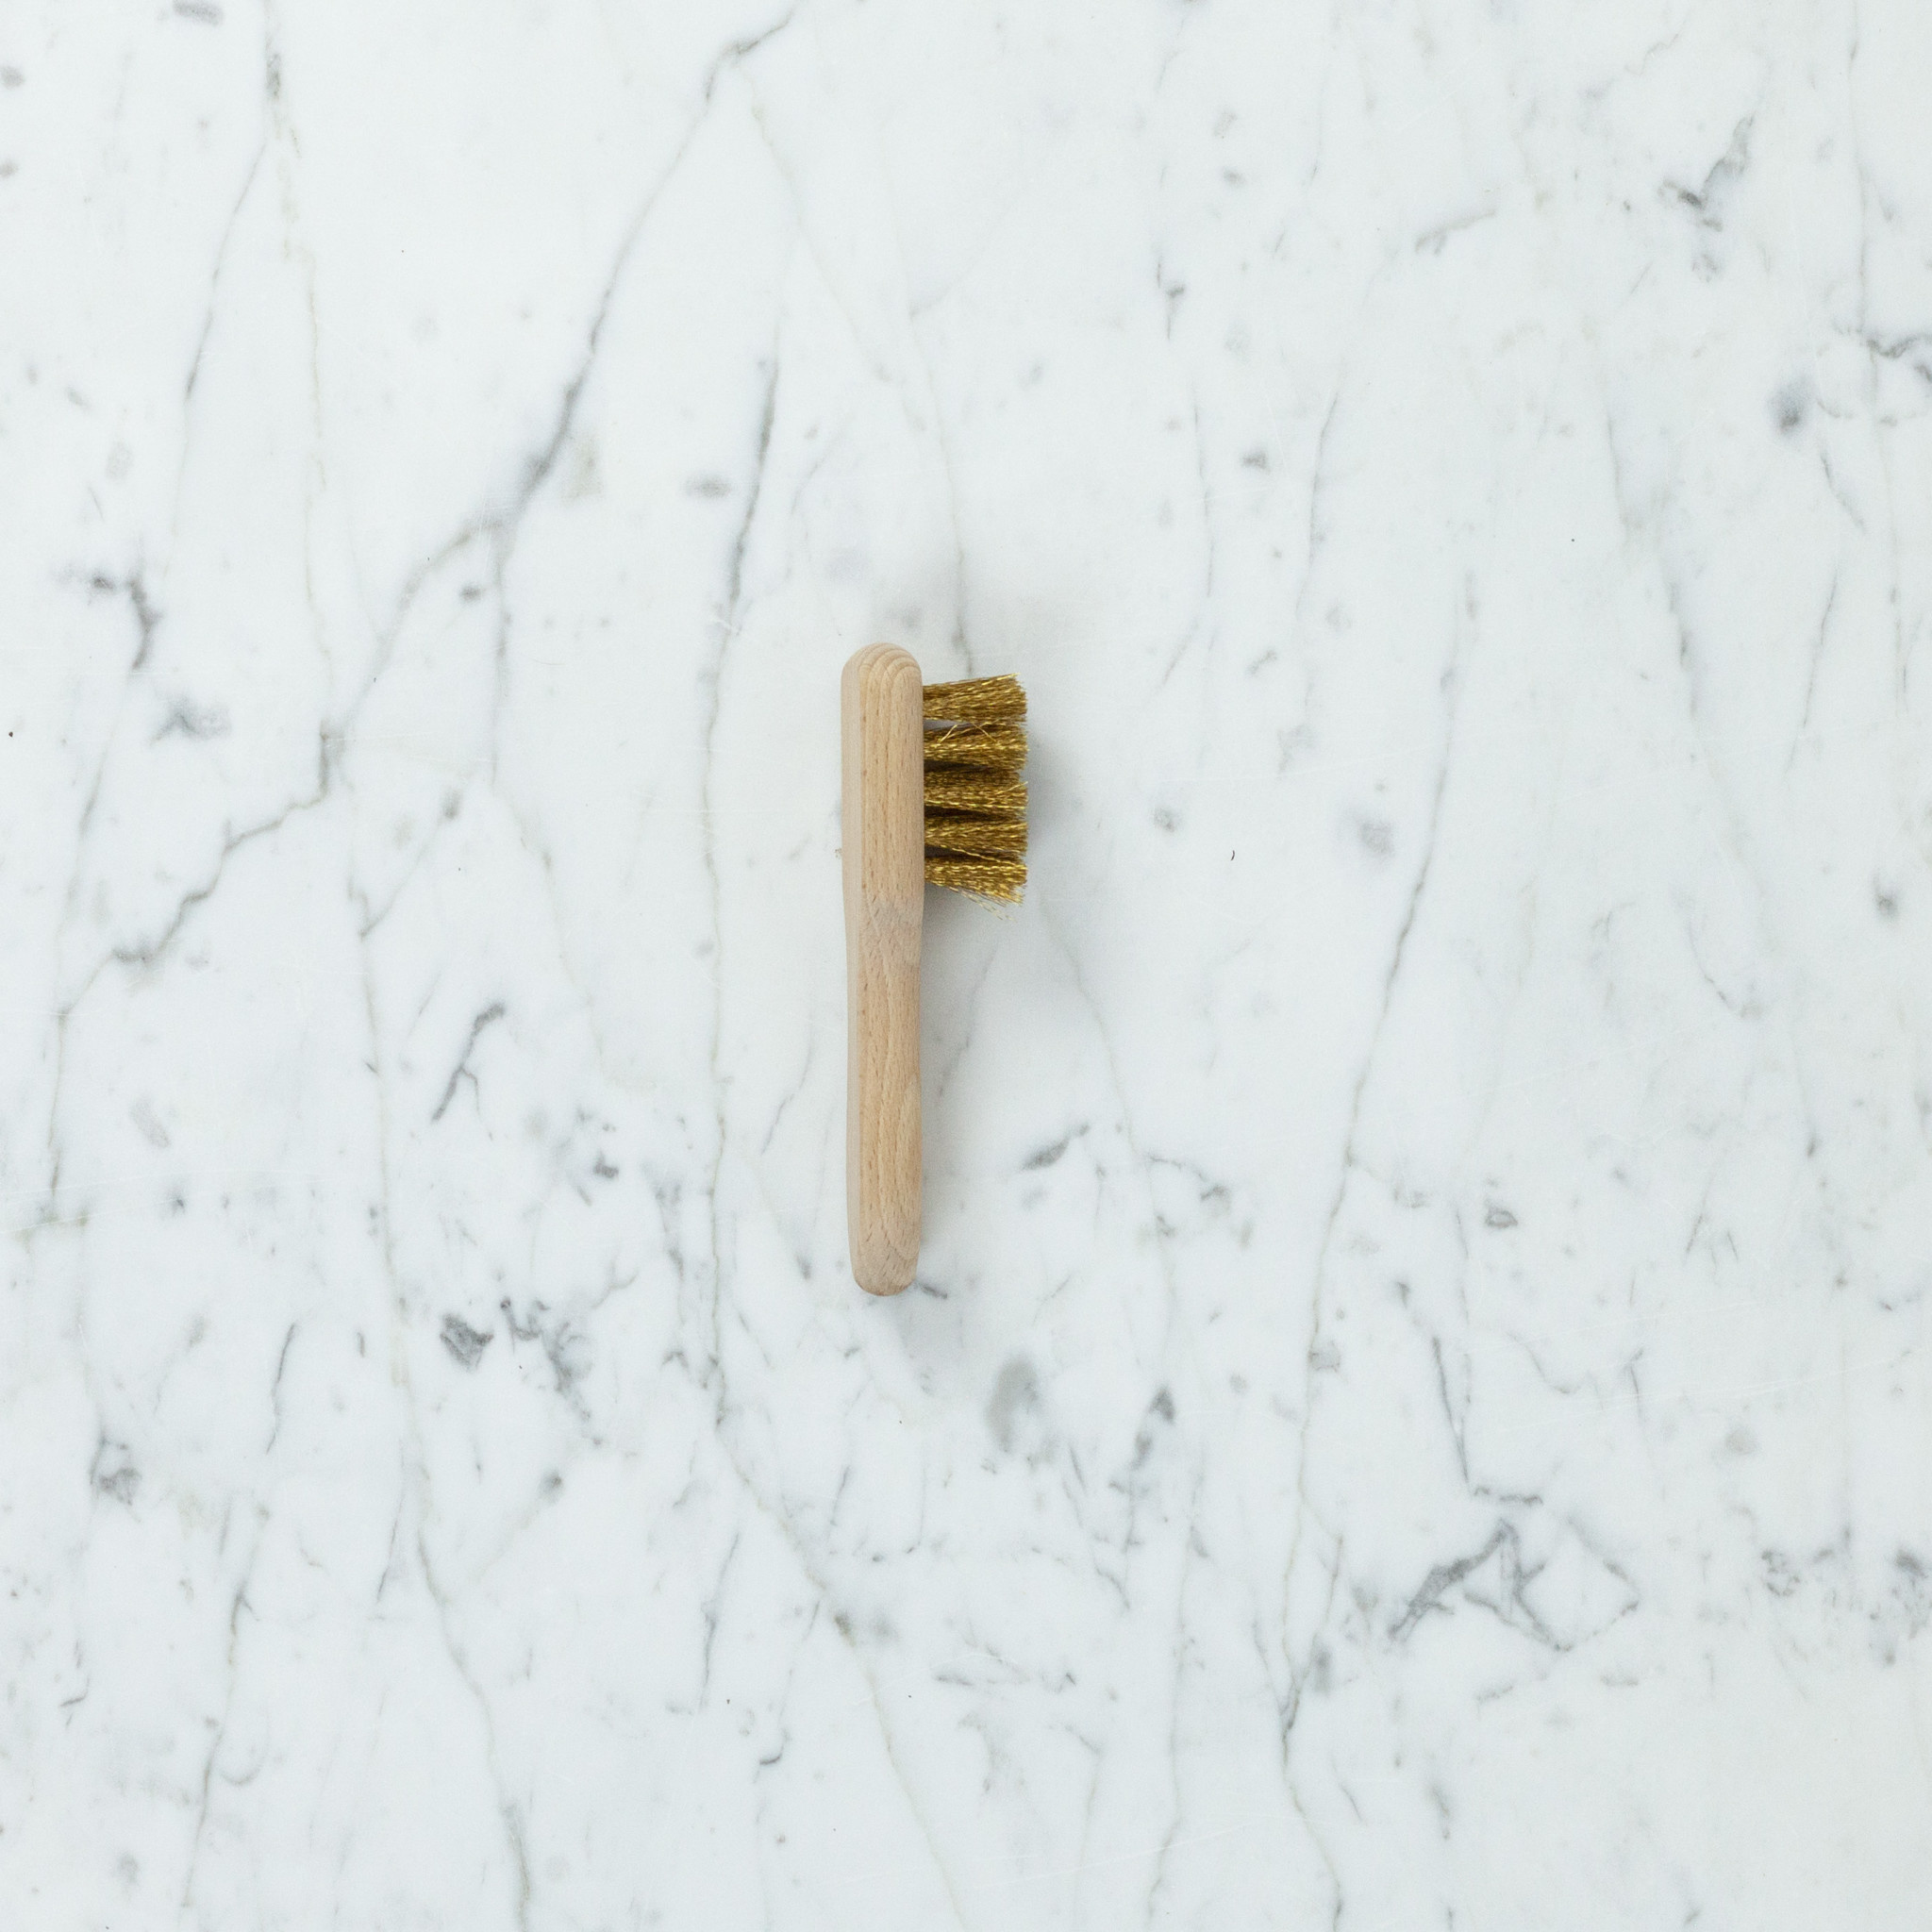 German Beechwood Suede Nap Brush with Brass Bristles - 4.75""